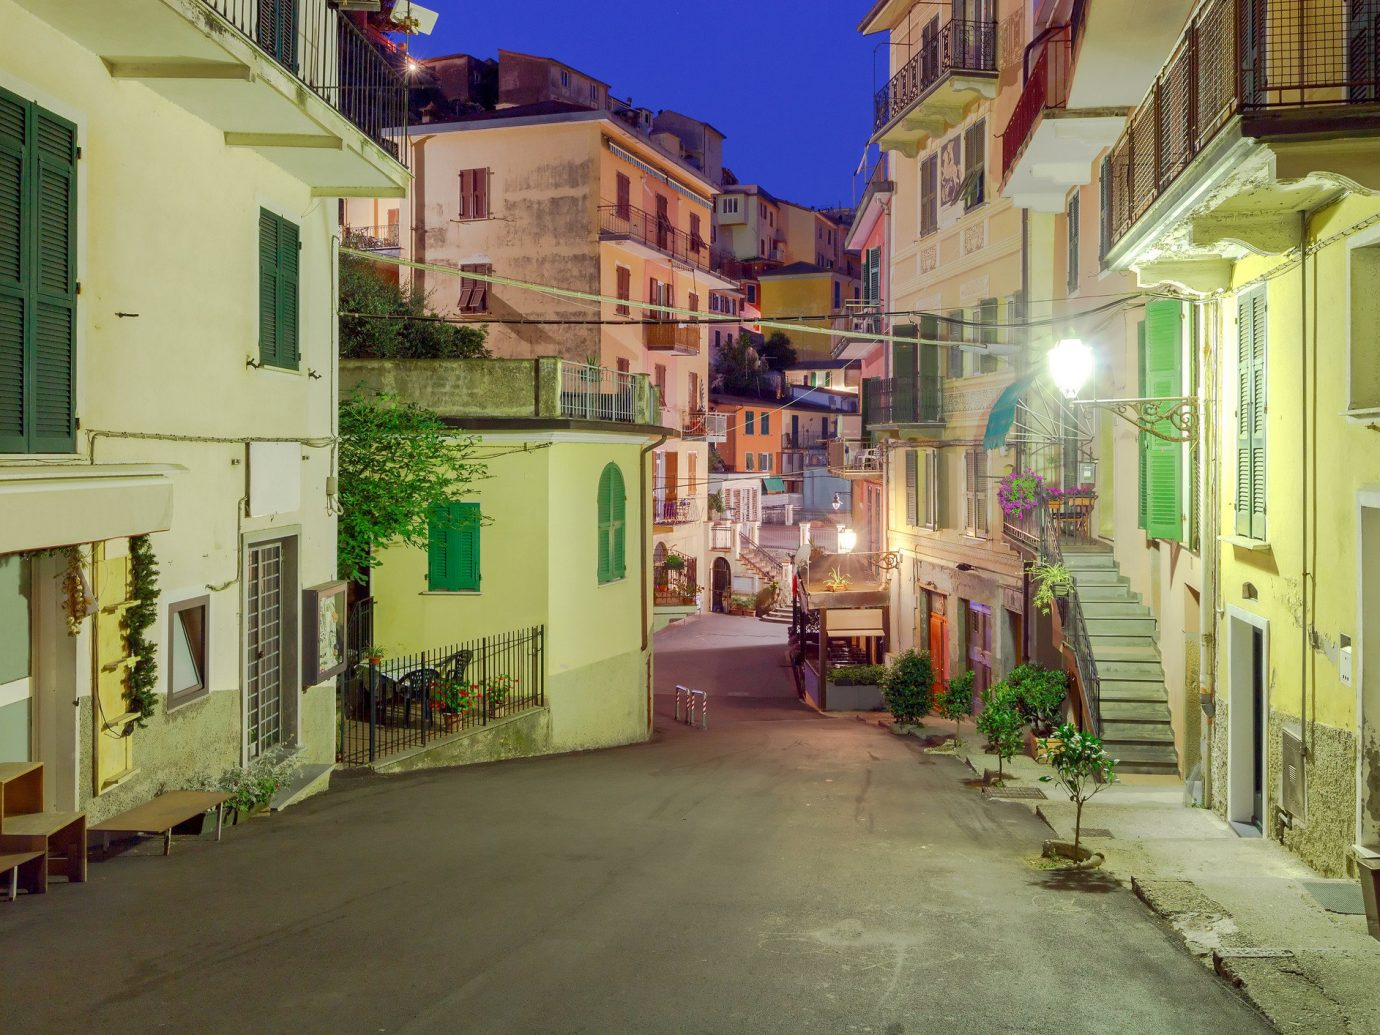 Italy Trip Ideas building outdoor Town neighbourhood street alley infrastructure City road house residential area home way mixed use real estate facade window Downtown tree sky apartment store sidewalk